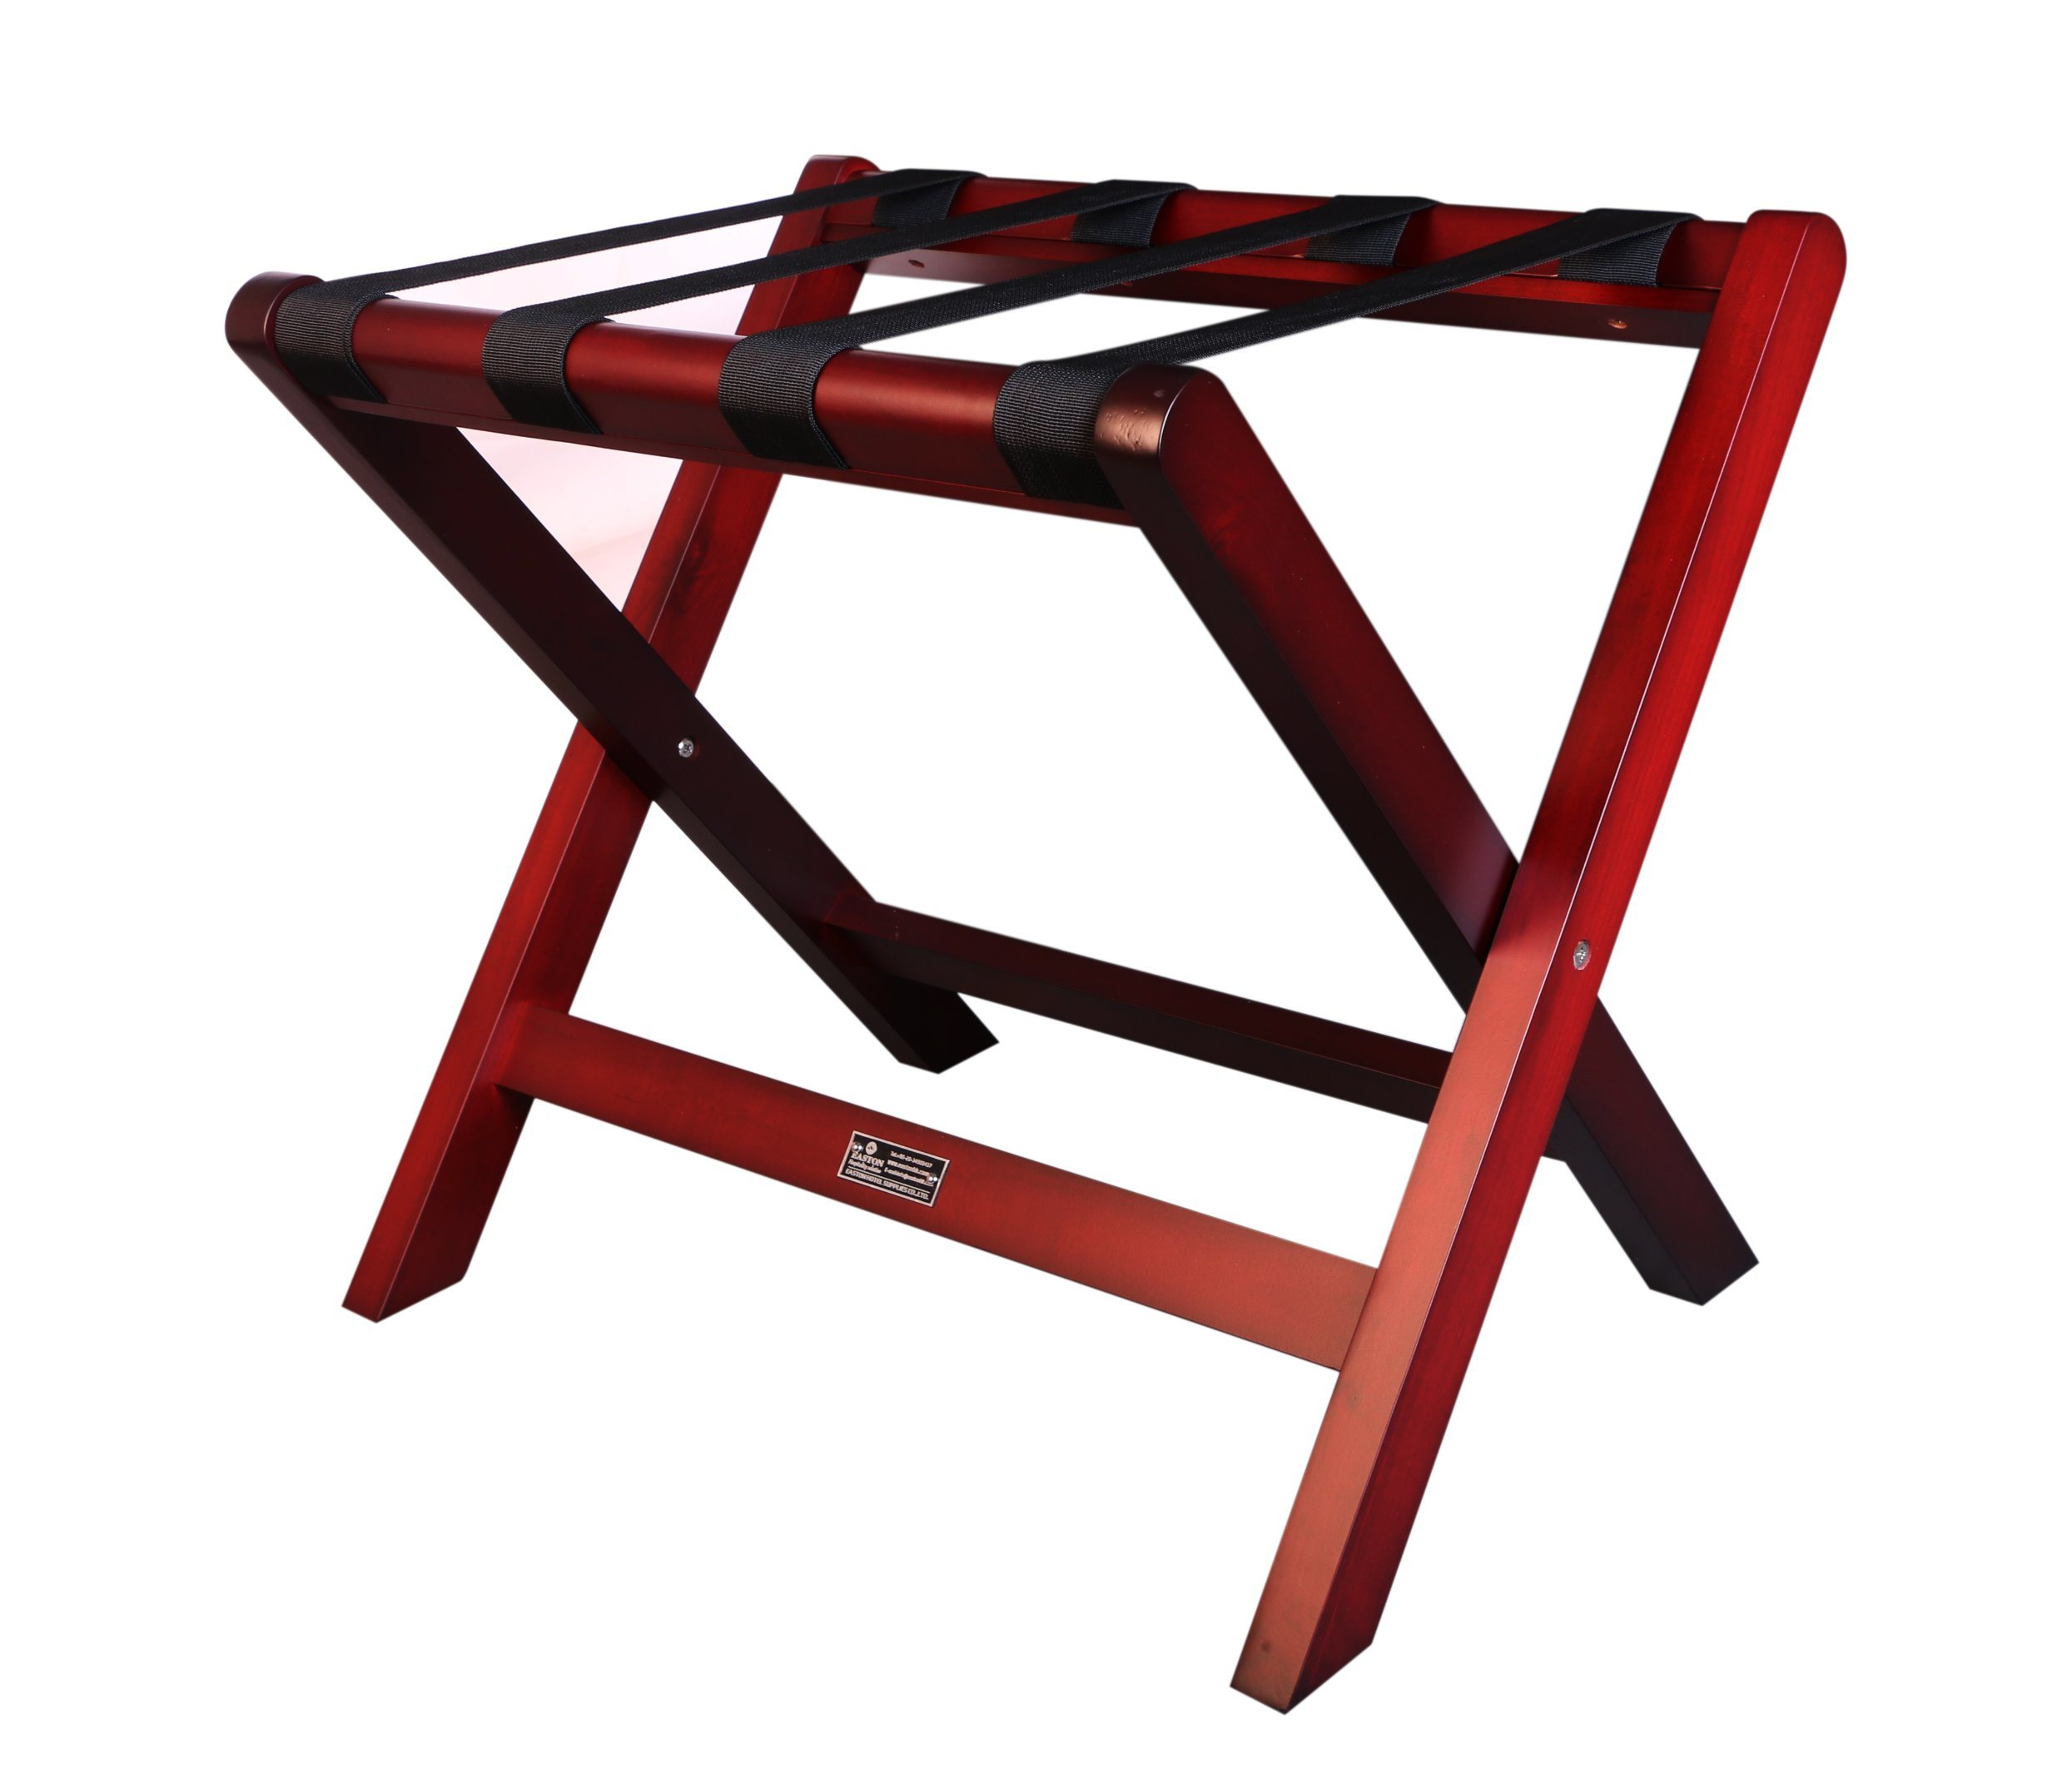 hotel luggage rack. Fold Up Wooden Luggage Rack For Hotel R